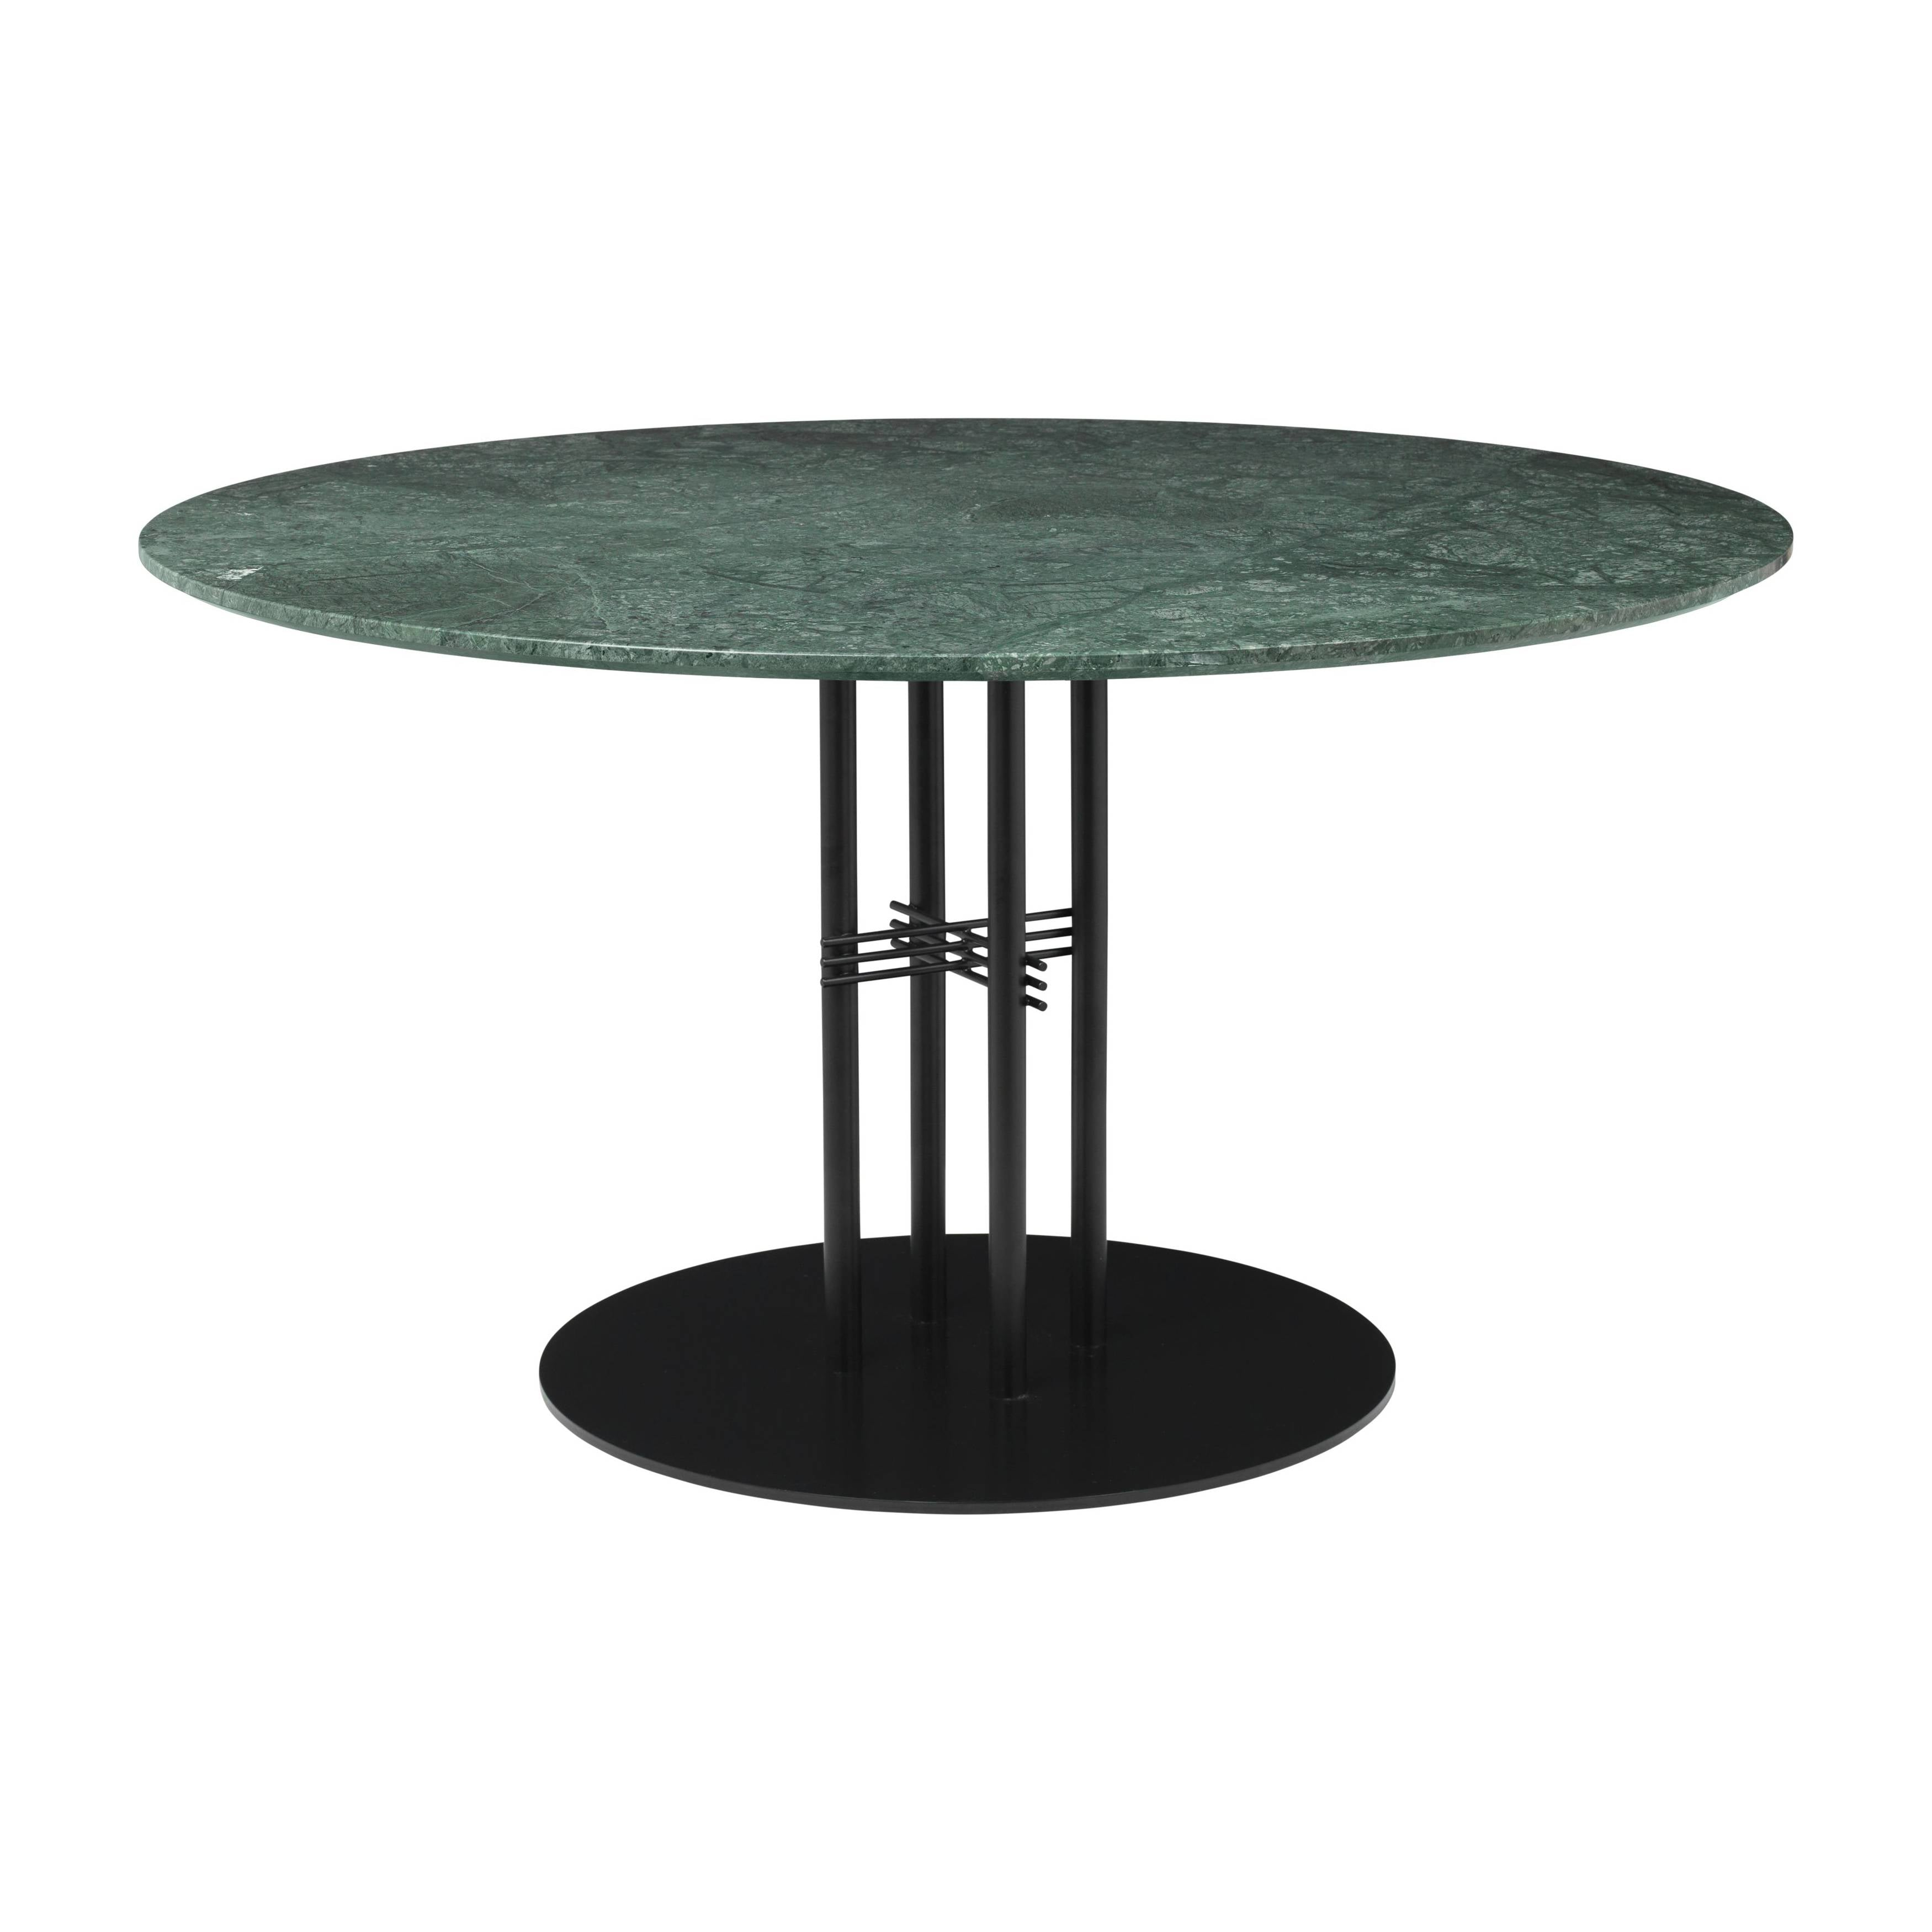 TS Column Dining Table: Large + Black Base + Green Gautemala Marble